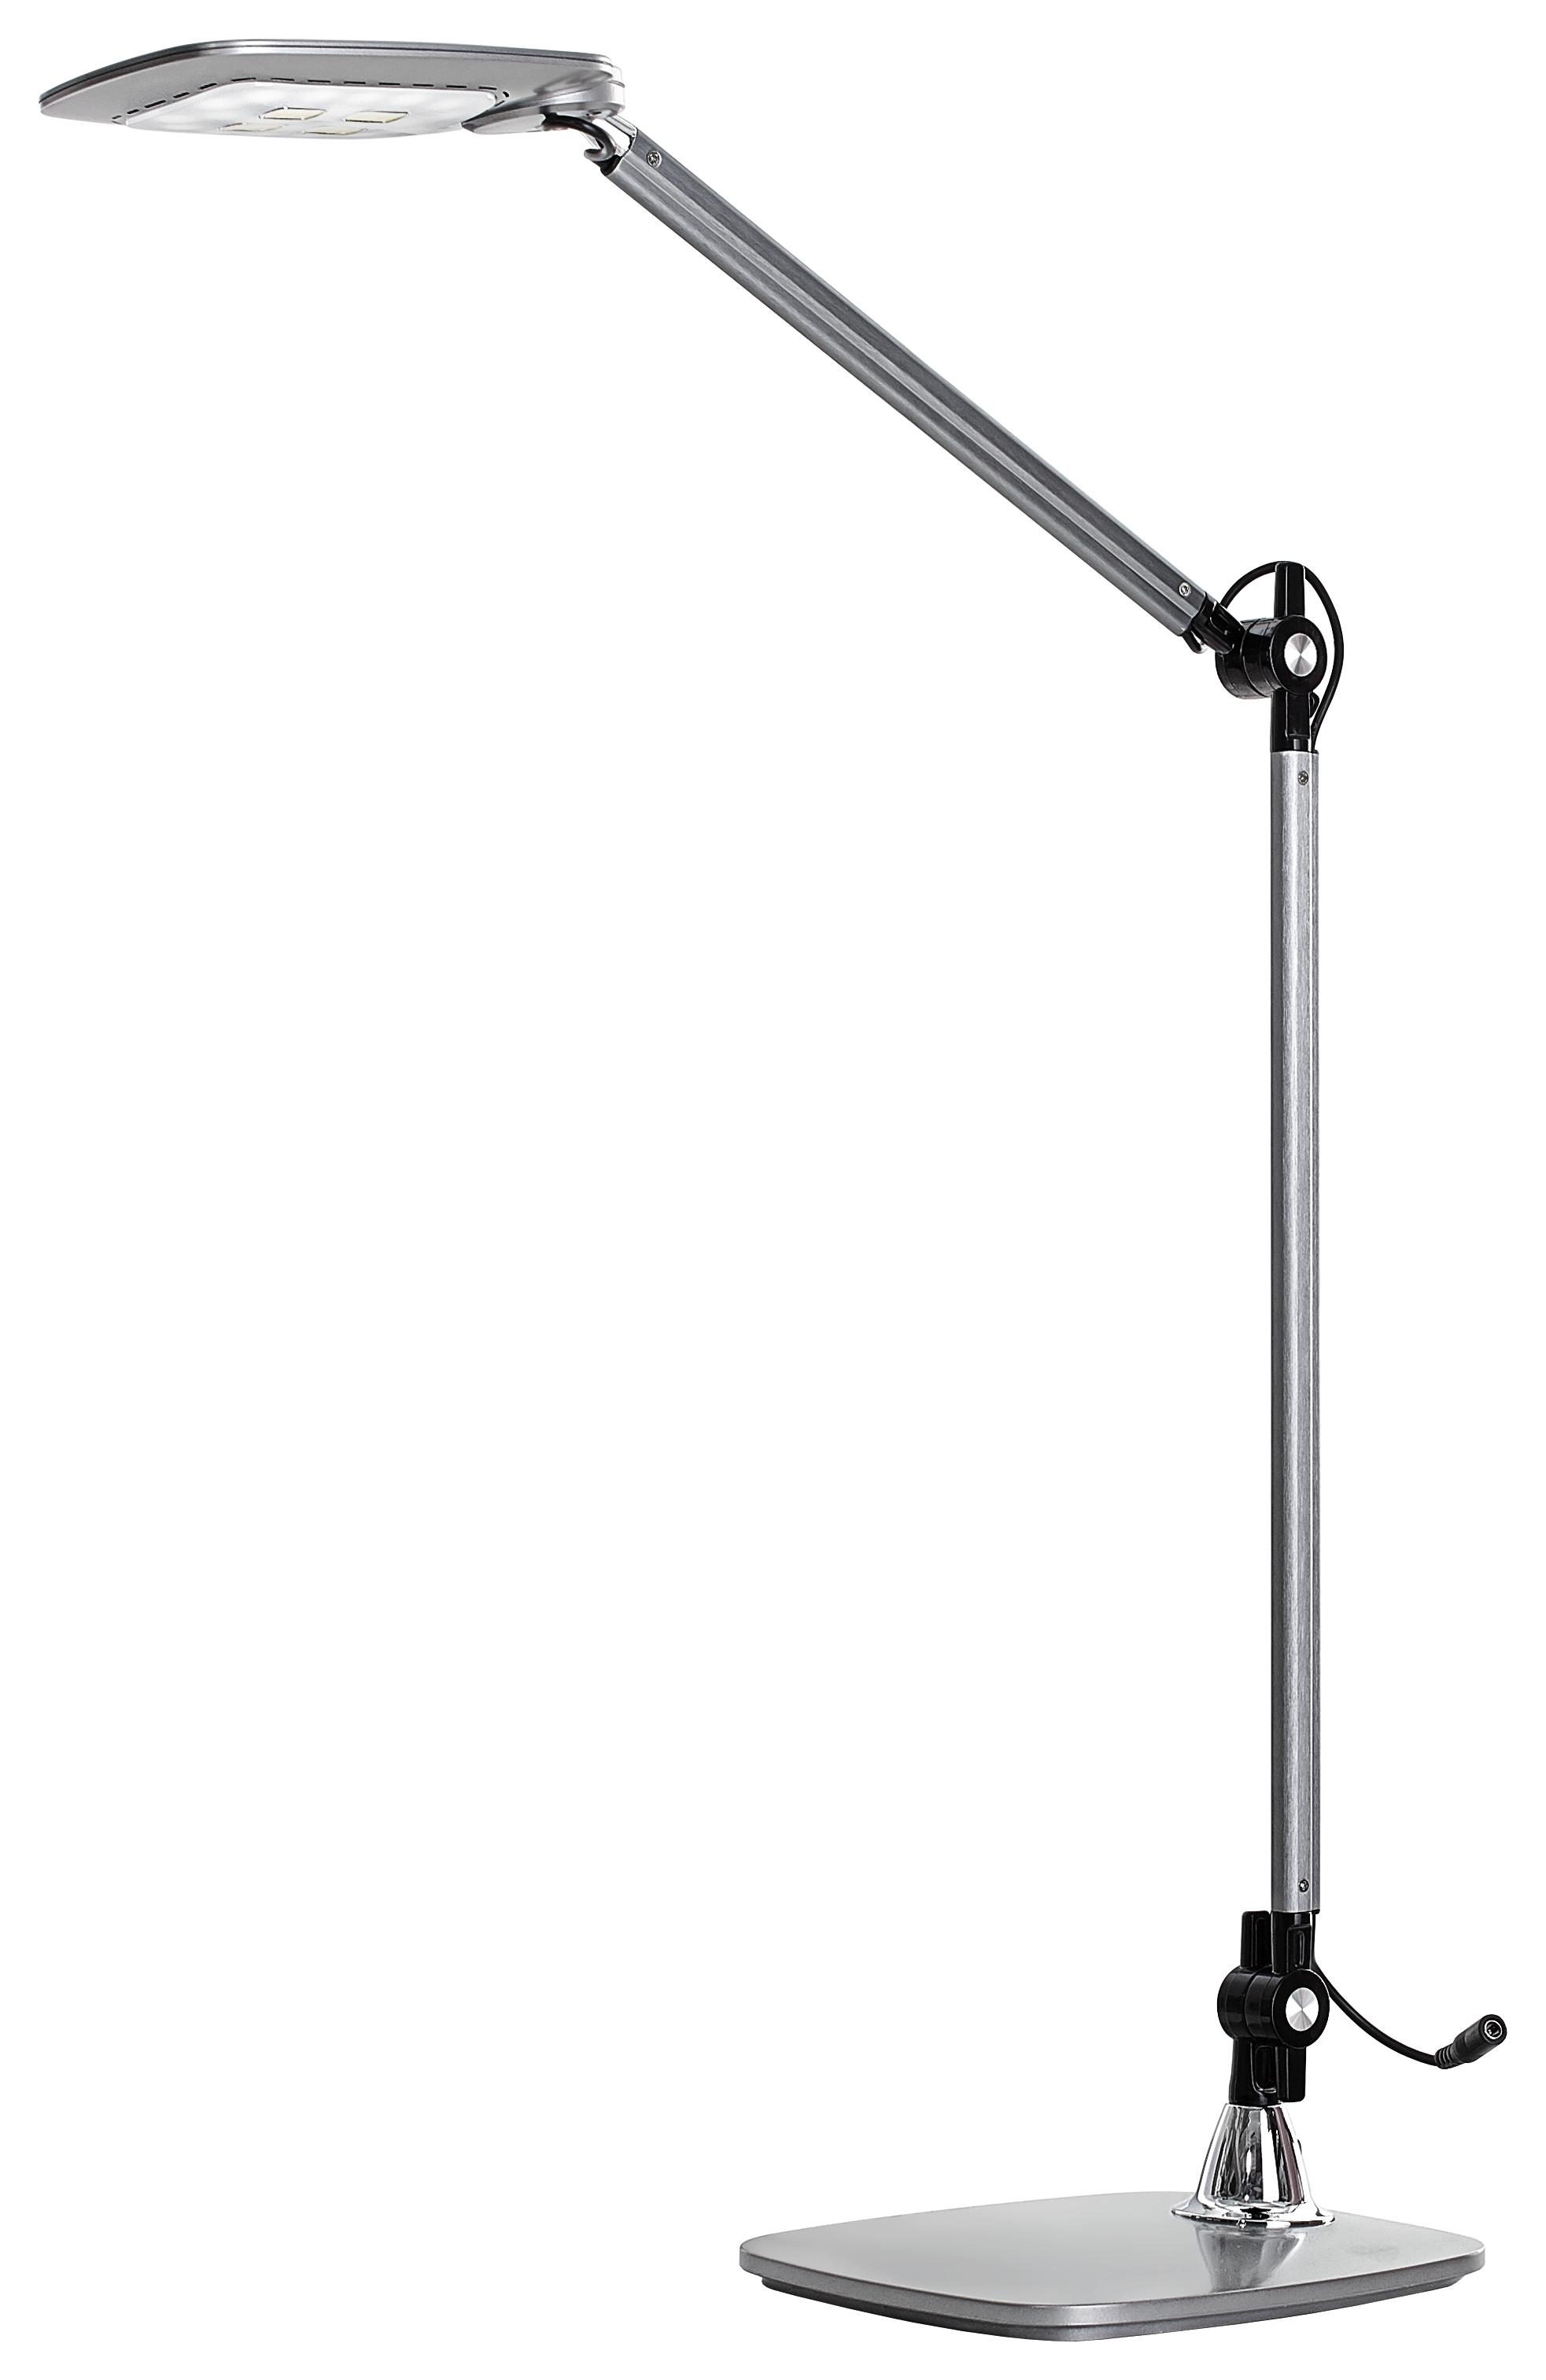 LED-SKRIVBORDSLAMPA - silver, Design, metall/plast (25,5/18,5/49,5cm) - Novel